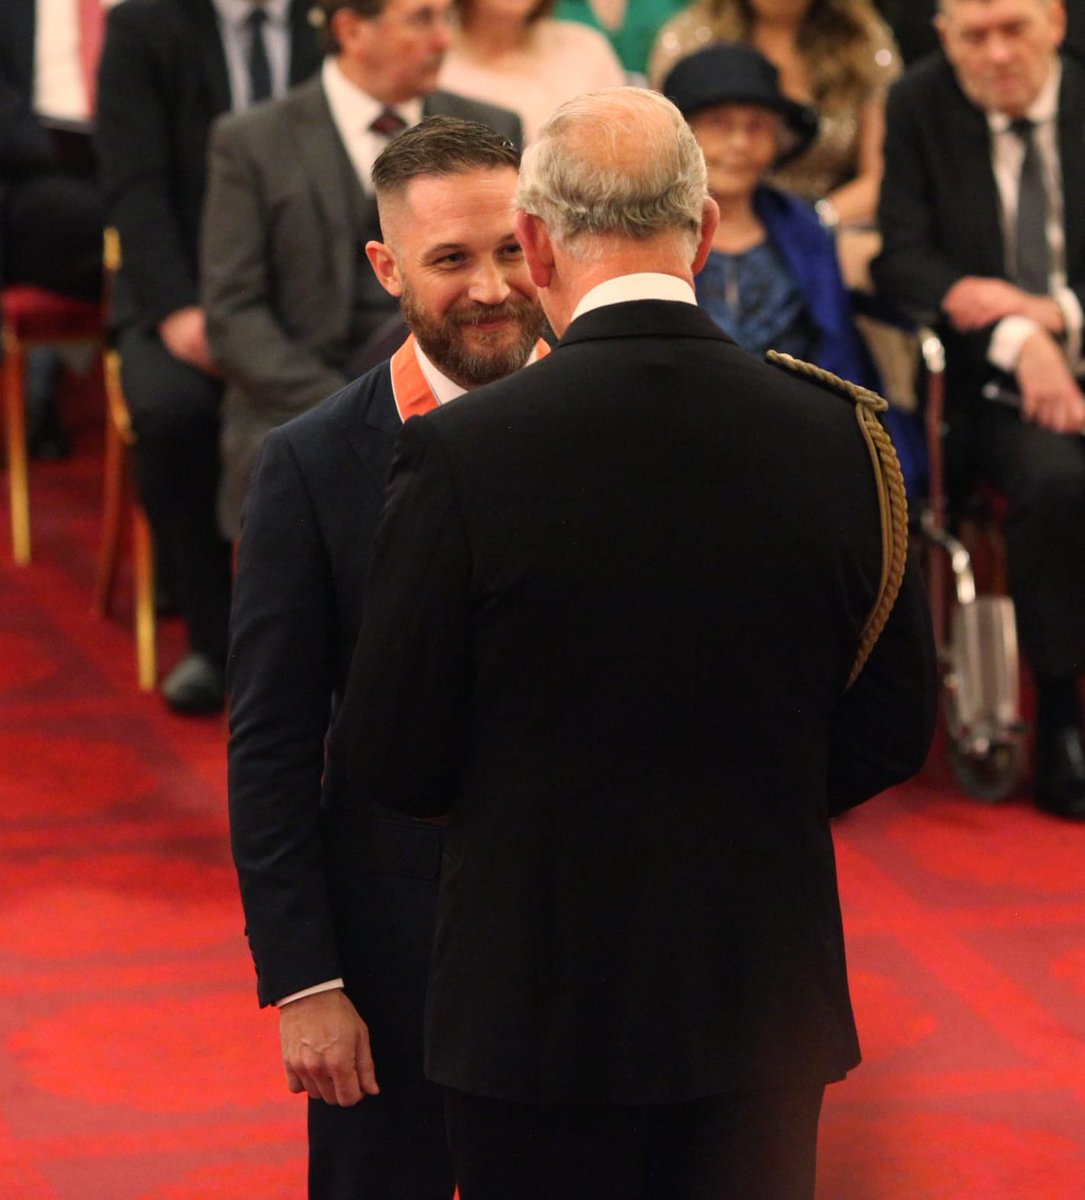 Actor Tom Hardy has been made a #CBE for services to drama. He received his award from The Prince of Wales at Buckingham Palace today.